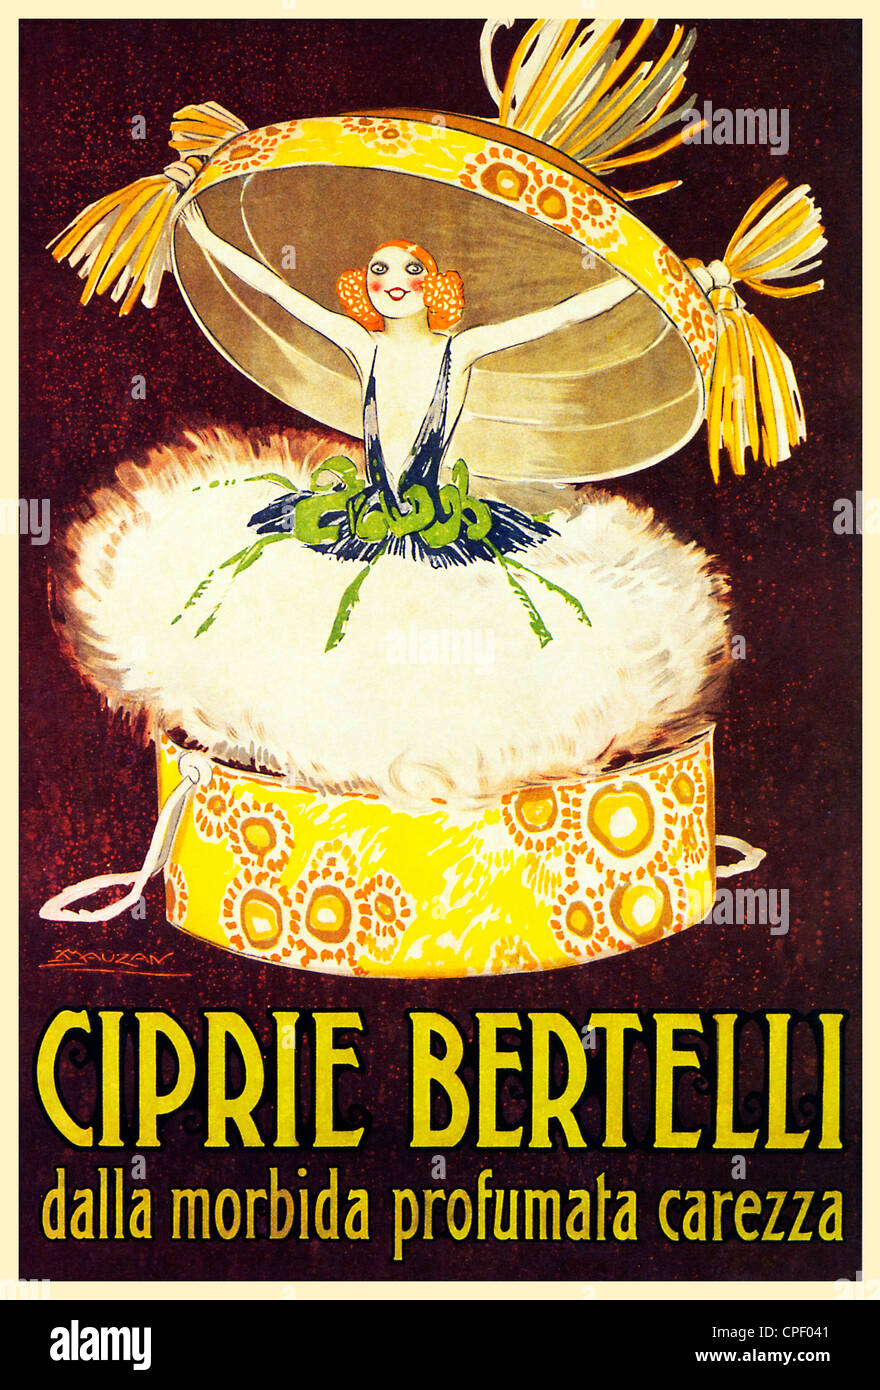 Ciprie Bertelli, 1921 poster for the Italian face powder, Scented Soft Caress, bursting out of its box - Stock Image